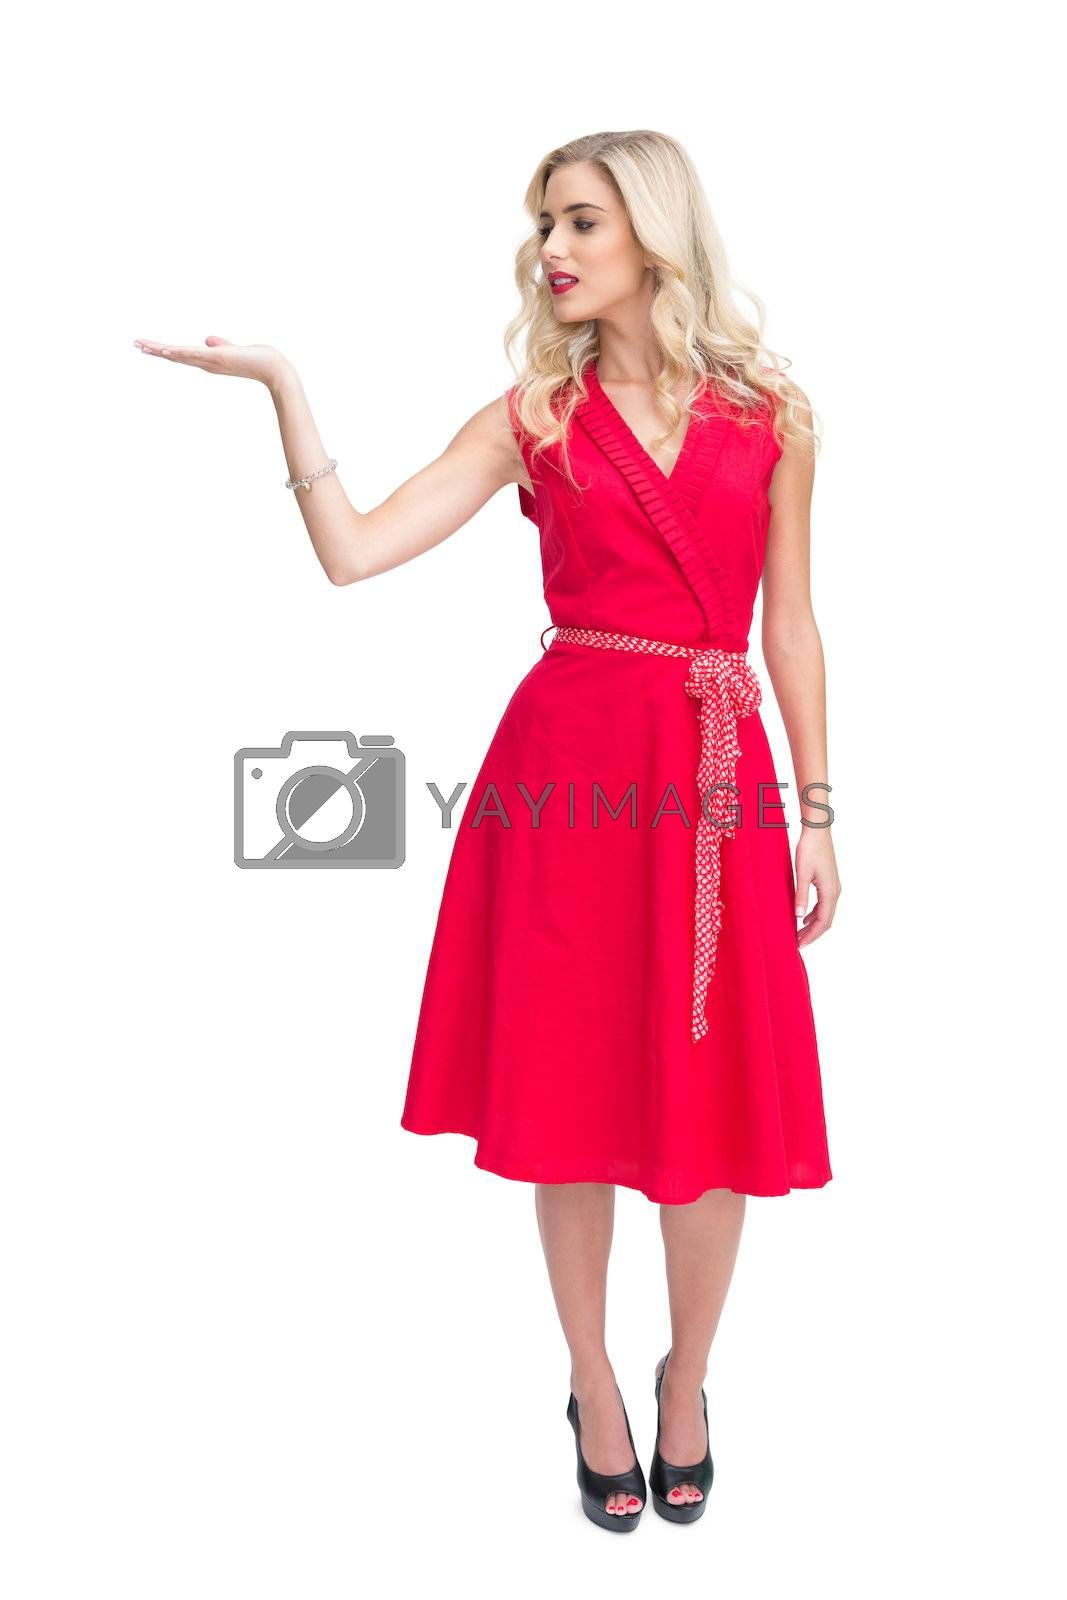 Smiling woman in red dress presenting something in her hand by Wavebreakmedia